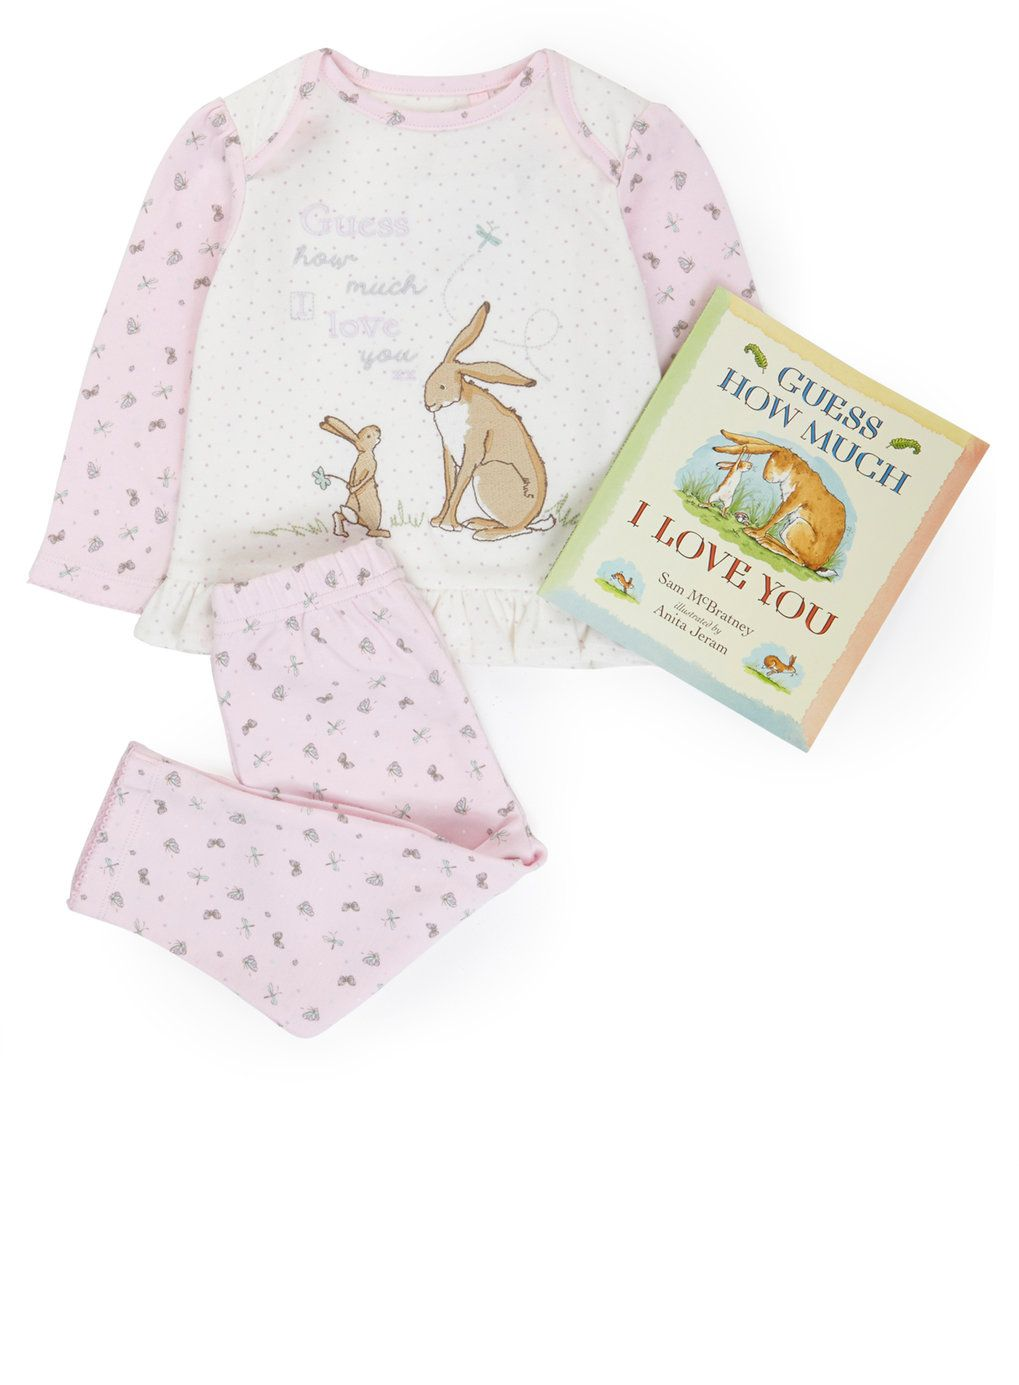 Guess How Much I Love You® Pyjamas with Book, from £15